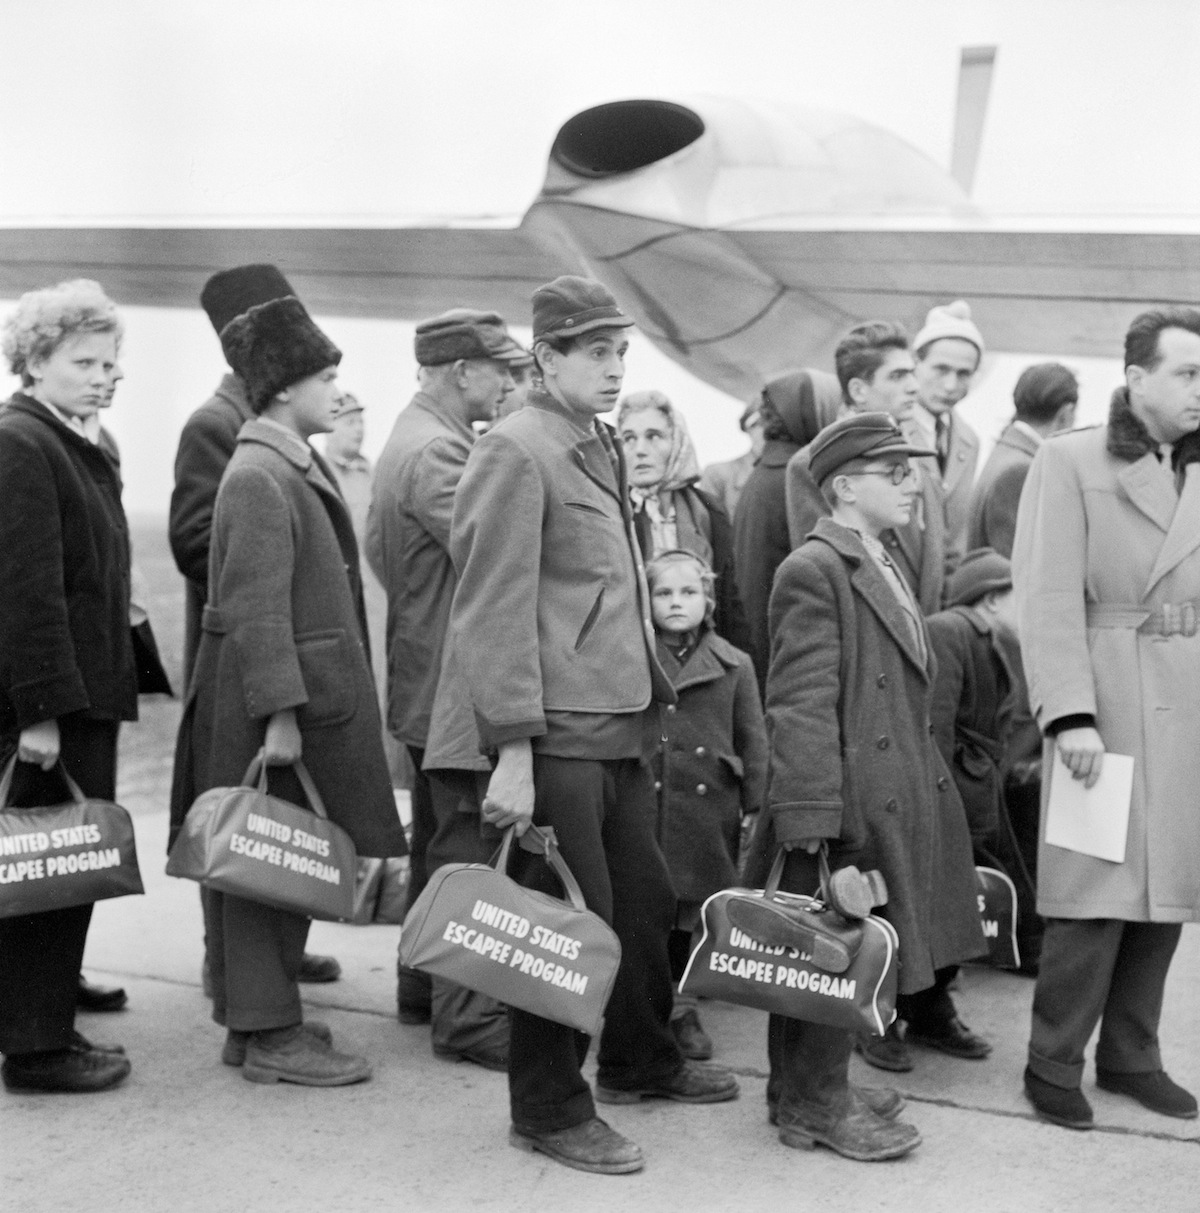 Hungarian refugees bording the plane for America at Schwechat Airport. Austria, 1956.